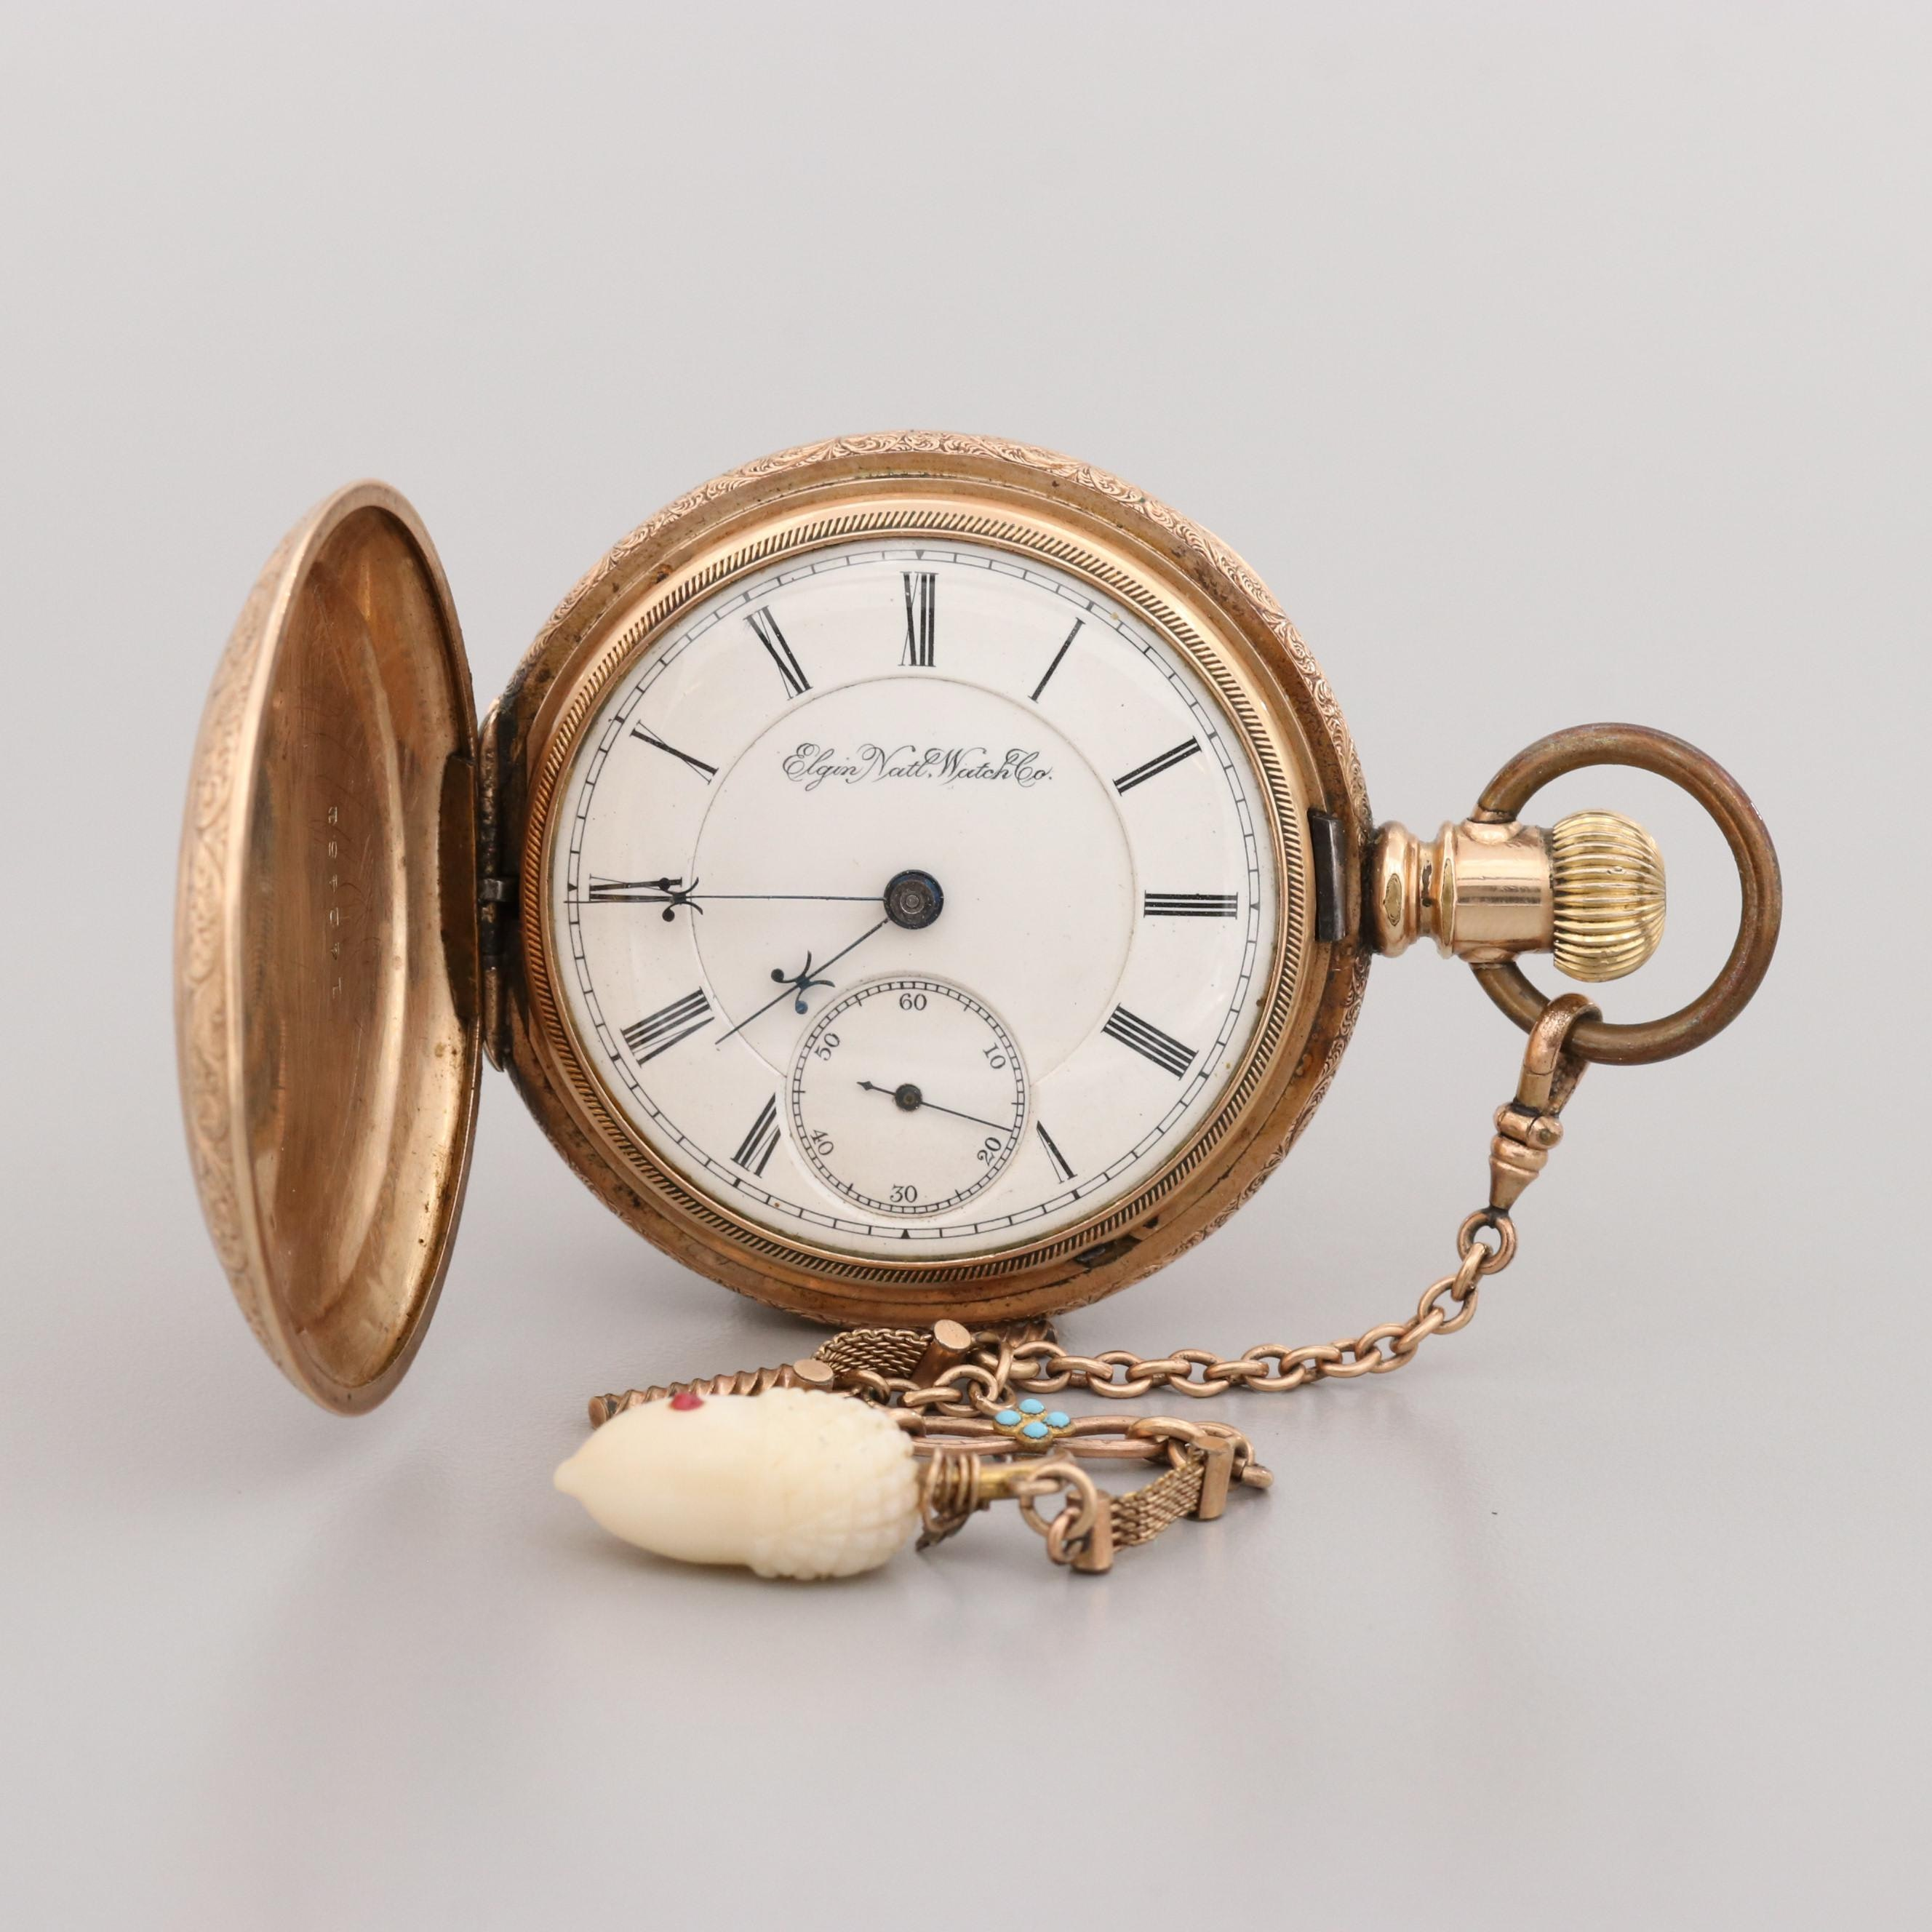 Elgin Railroad Grade Gold Filled Pocket Watch with Fob and Mother of Pearl, 1893